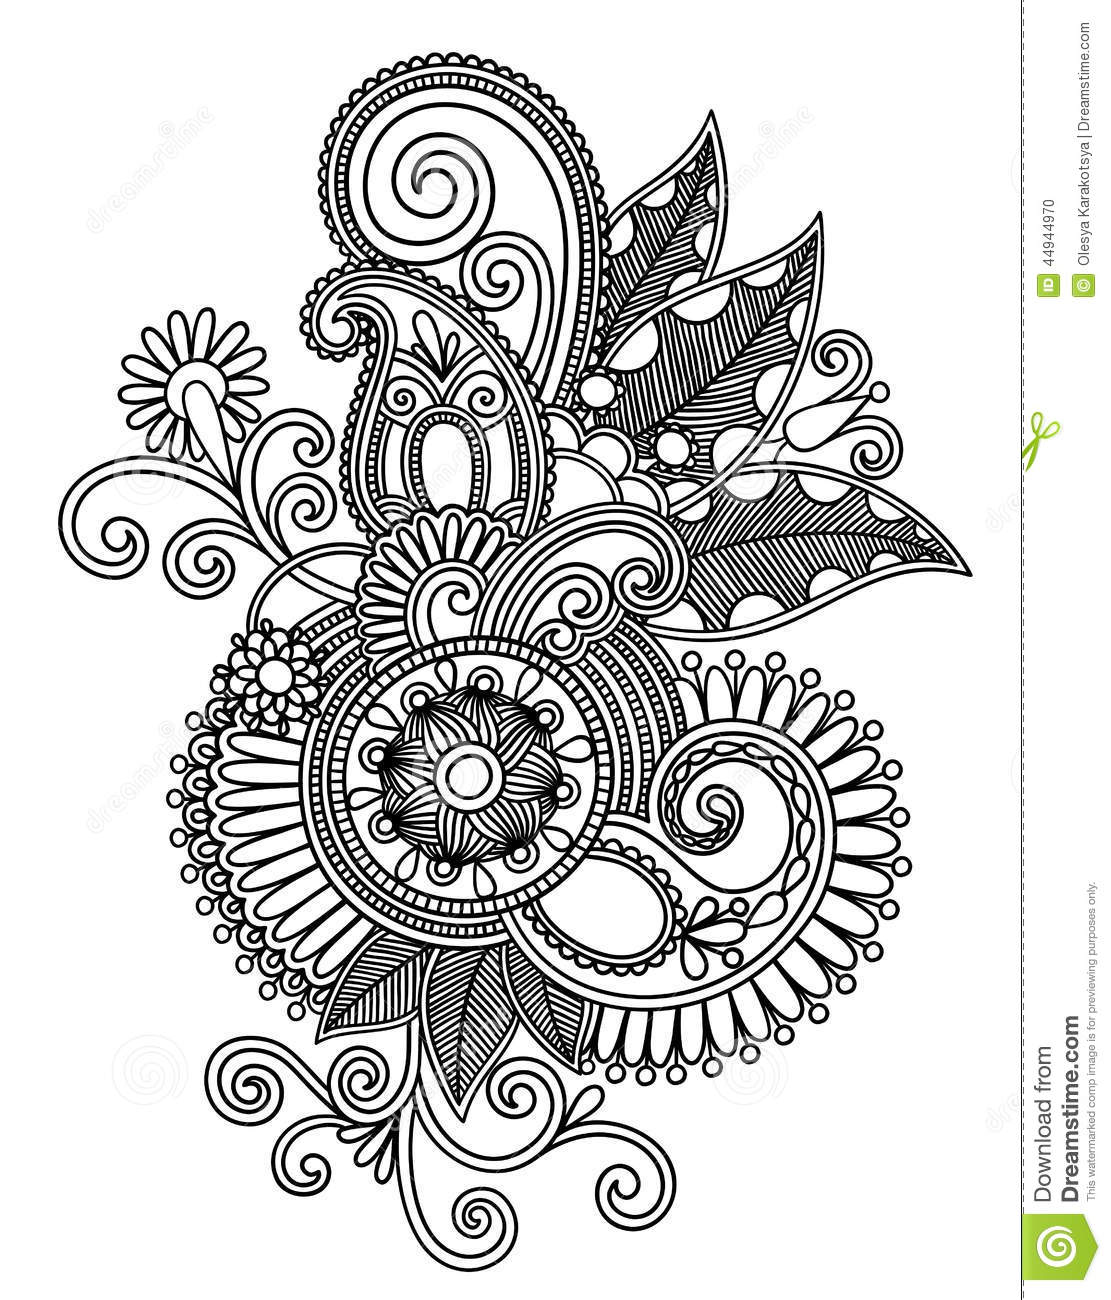 Traditional Flower Line Drawing : Hand draw line art ornate flower design stock vector